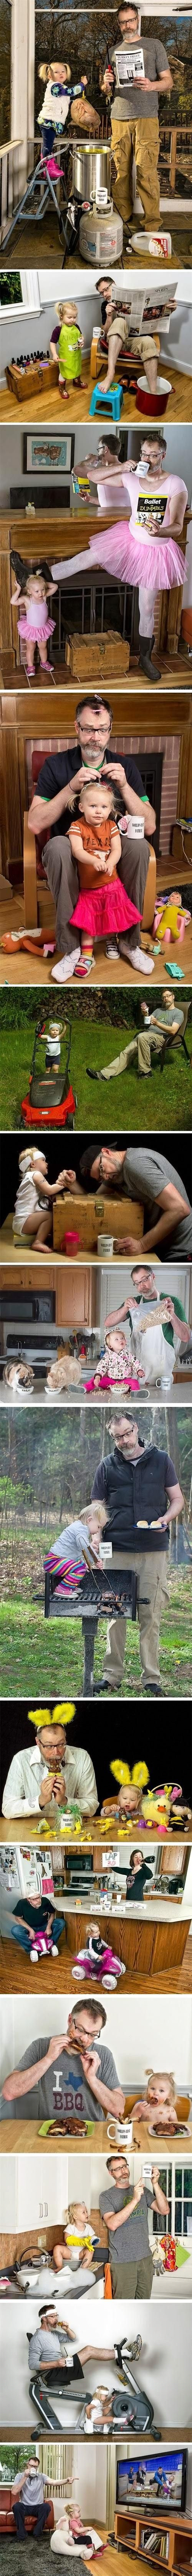 Dave Engledow: World's Best Father